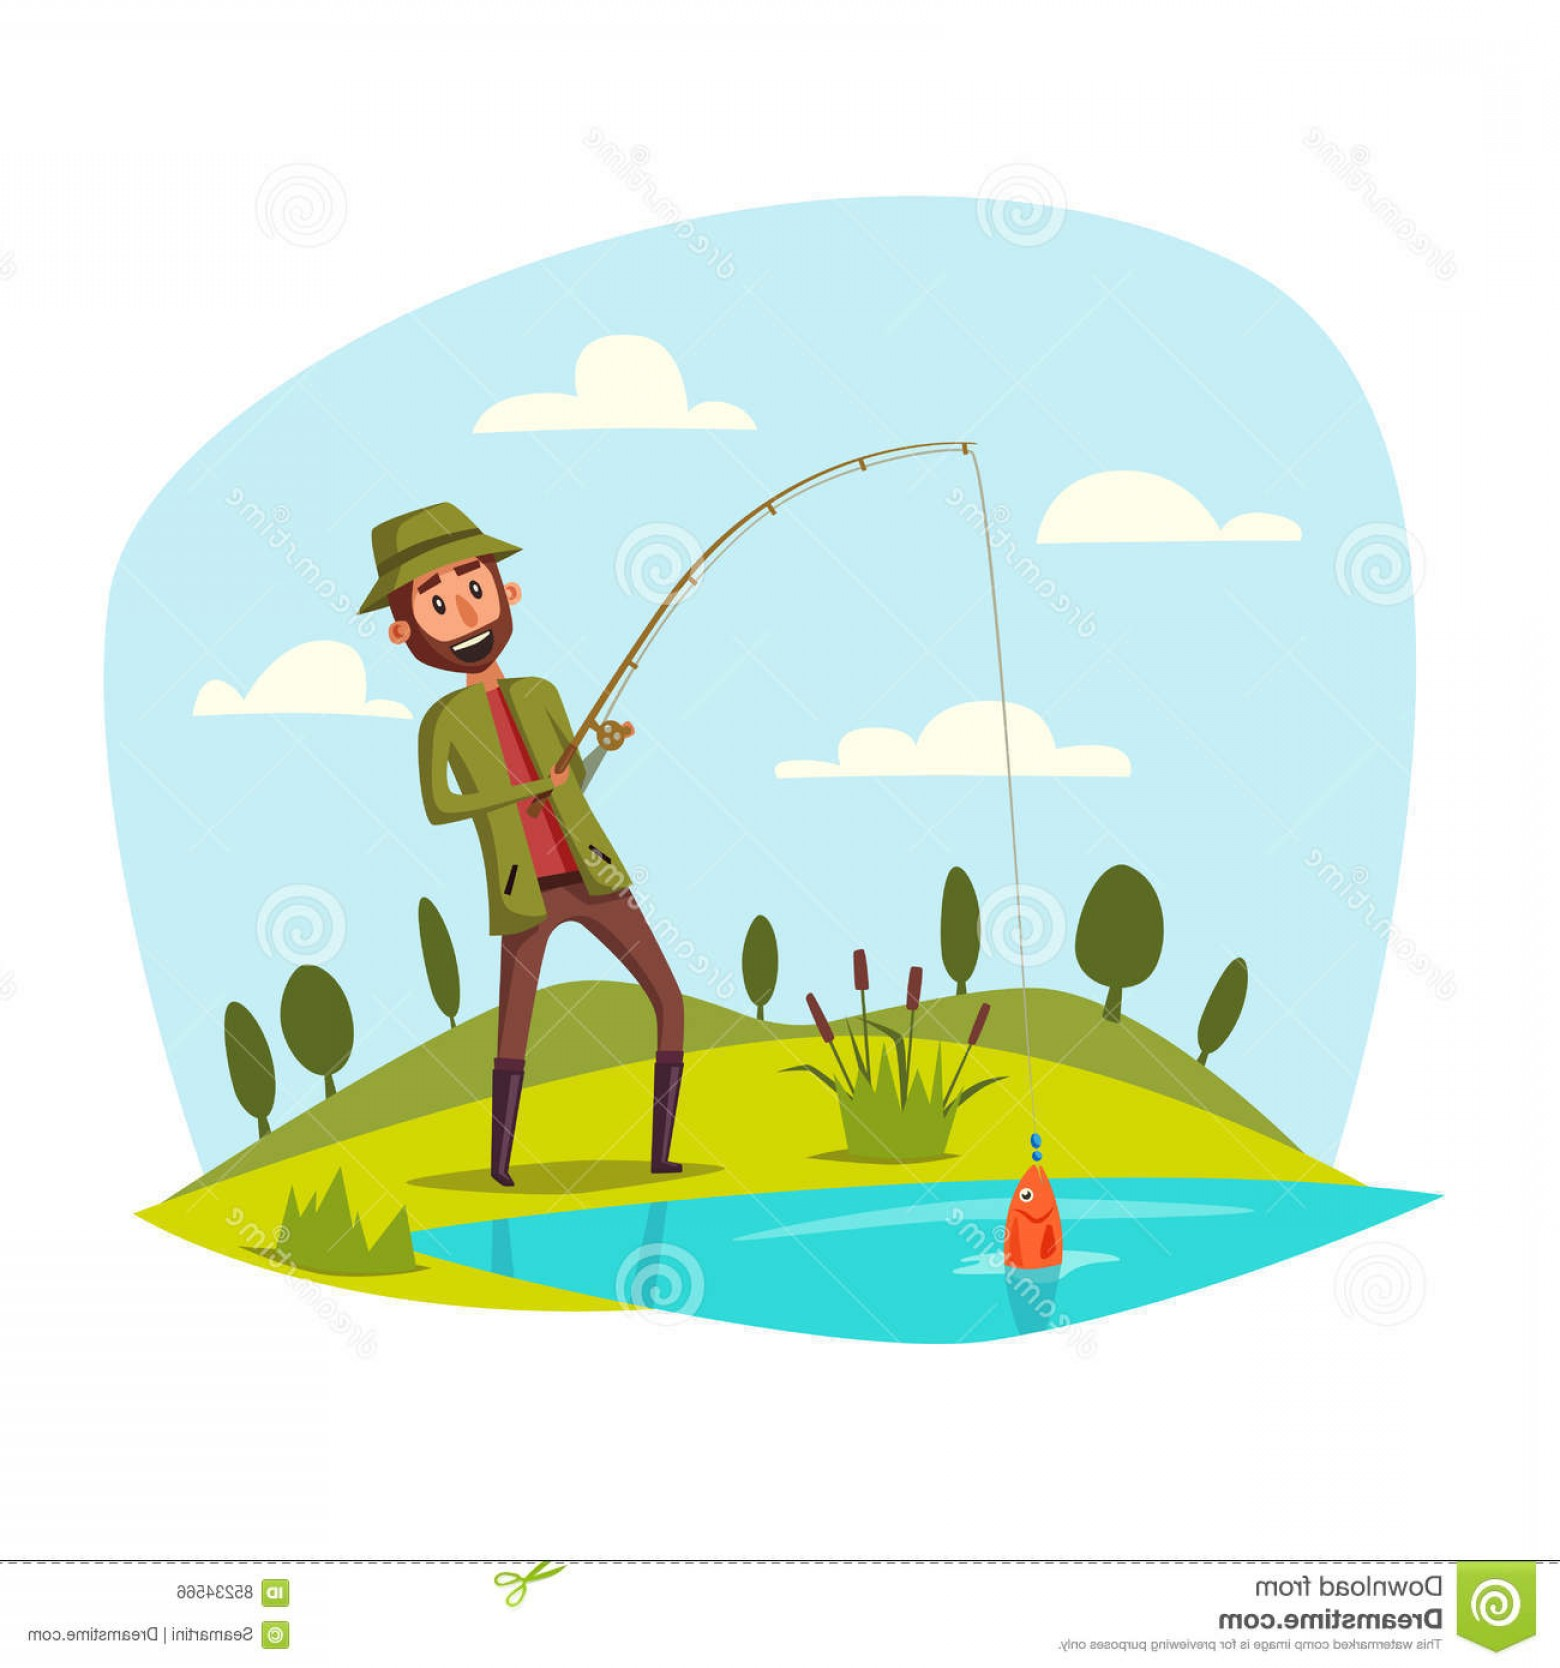 Catching Fish Hook Vector Art: Stock Illustration Man Fishing Rod Catching Vector Fish Hook Pulling Out Lake River Water Fisherman Sport Recreation Leisure Image